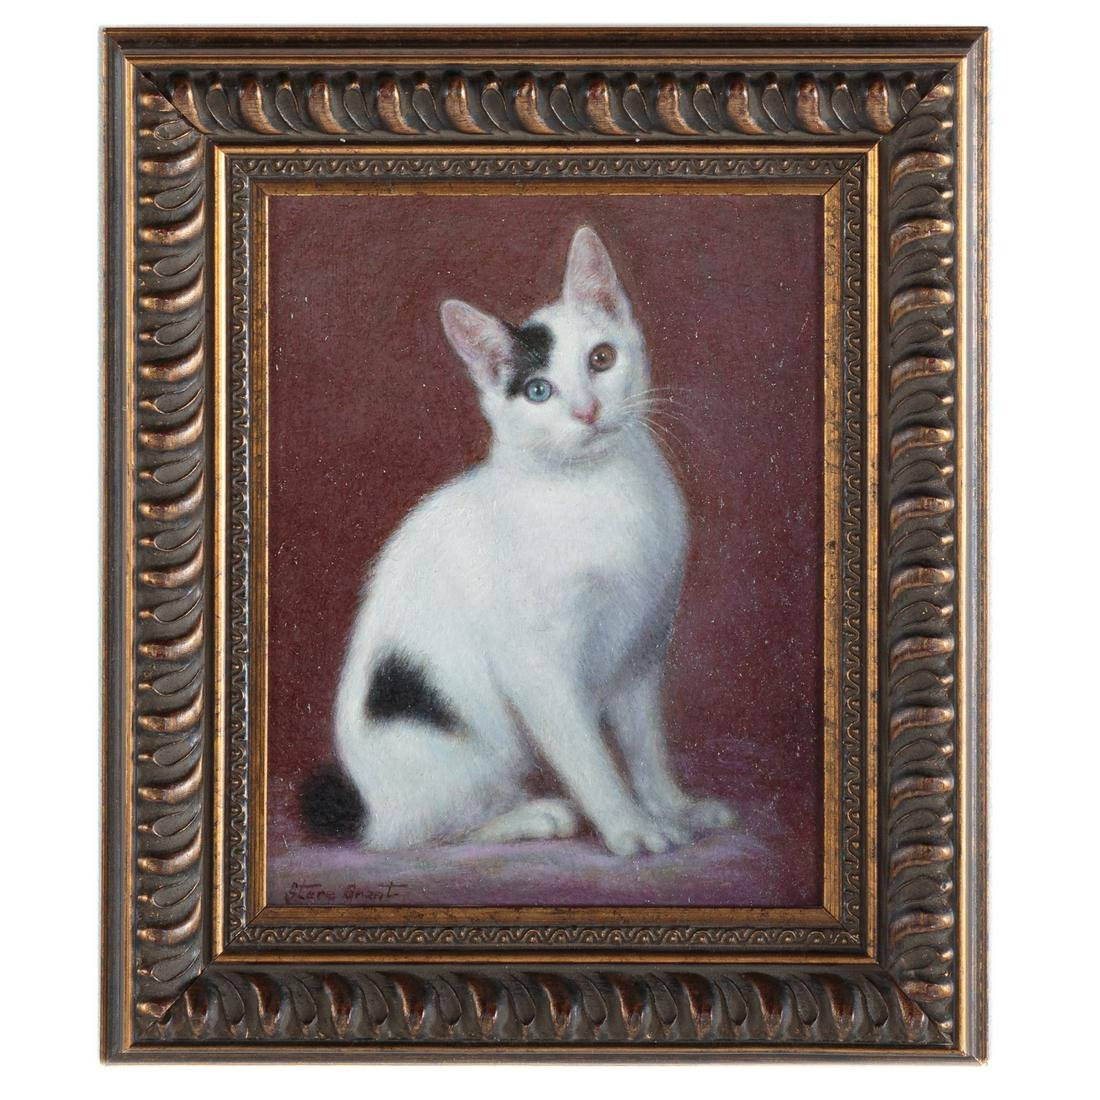 Stere Grant. Seated Cat